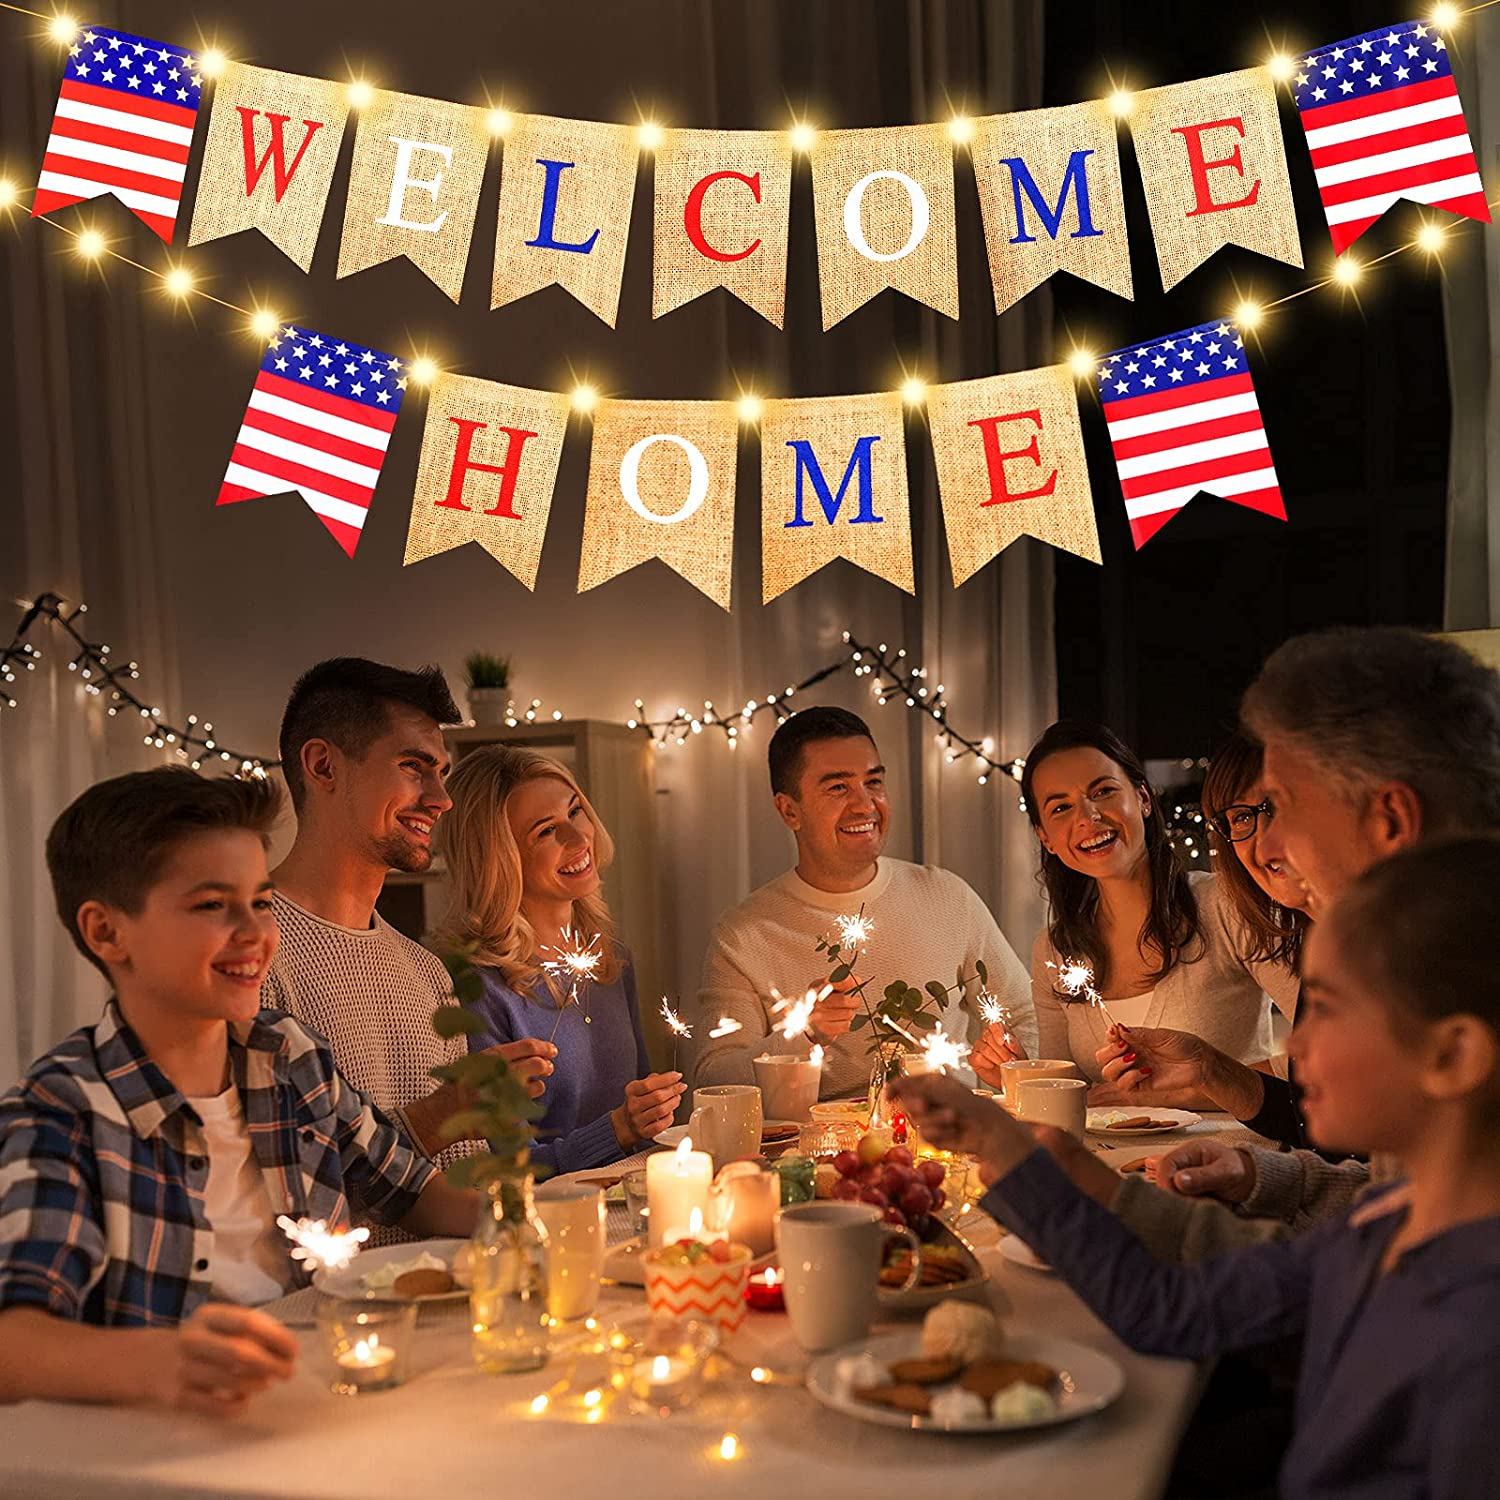 Welcome Home Banner with LED Fairy String Light 2 Flicker Mode, Patriotic Banner Bunting Welcome Home Banner for Housewarming Patriotic Military Decoration Family Party Supplies, Photo Booth Props